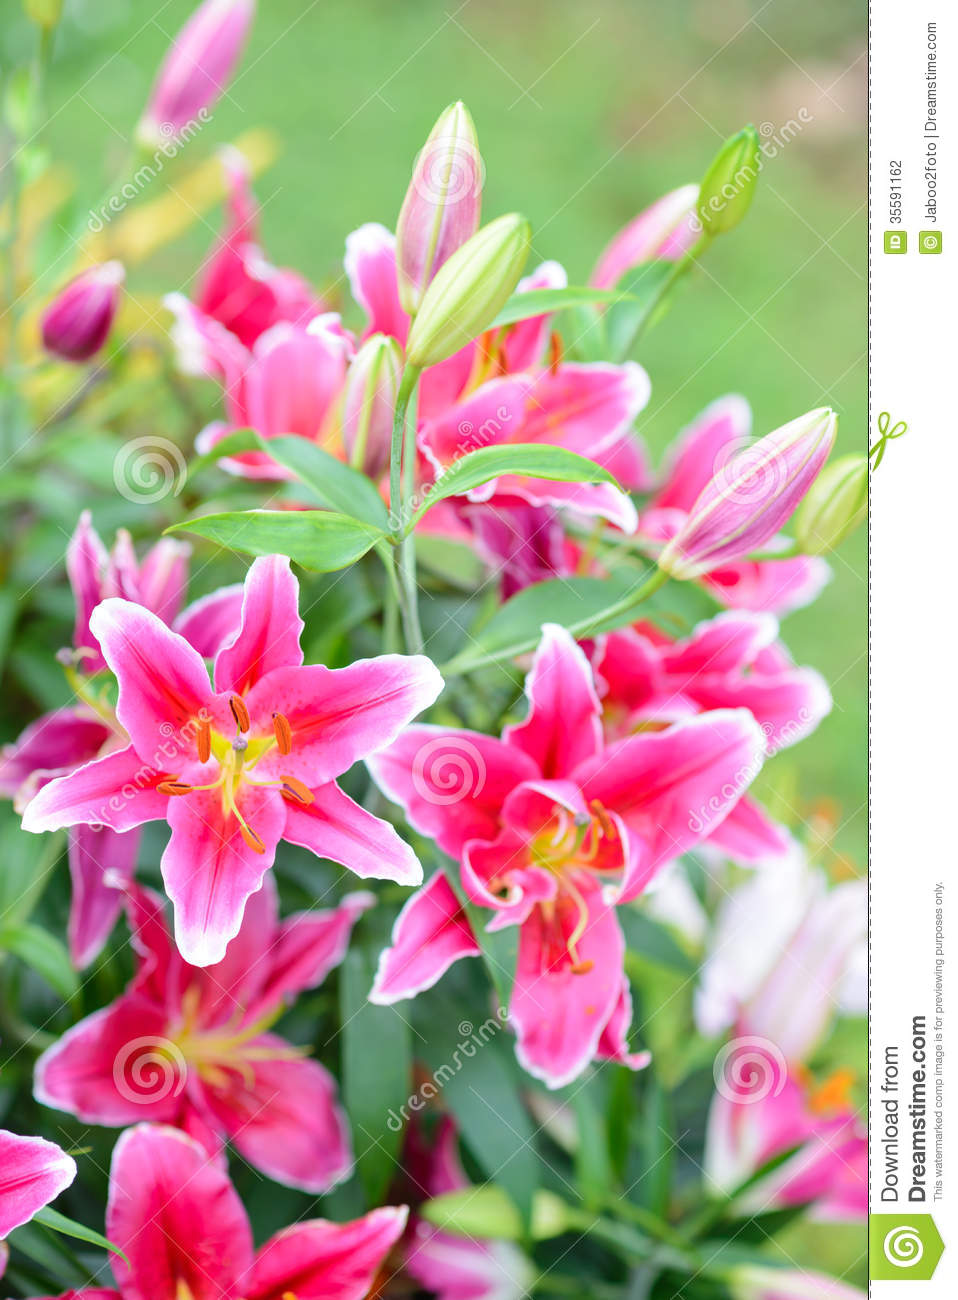 Pink Lily Flowers In The Garden Stock Photo Image Of Lily Flower